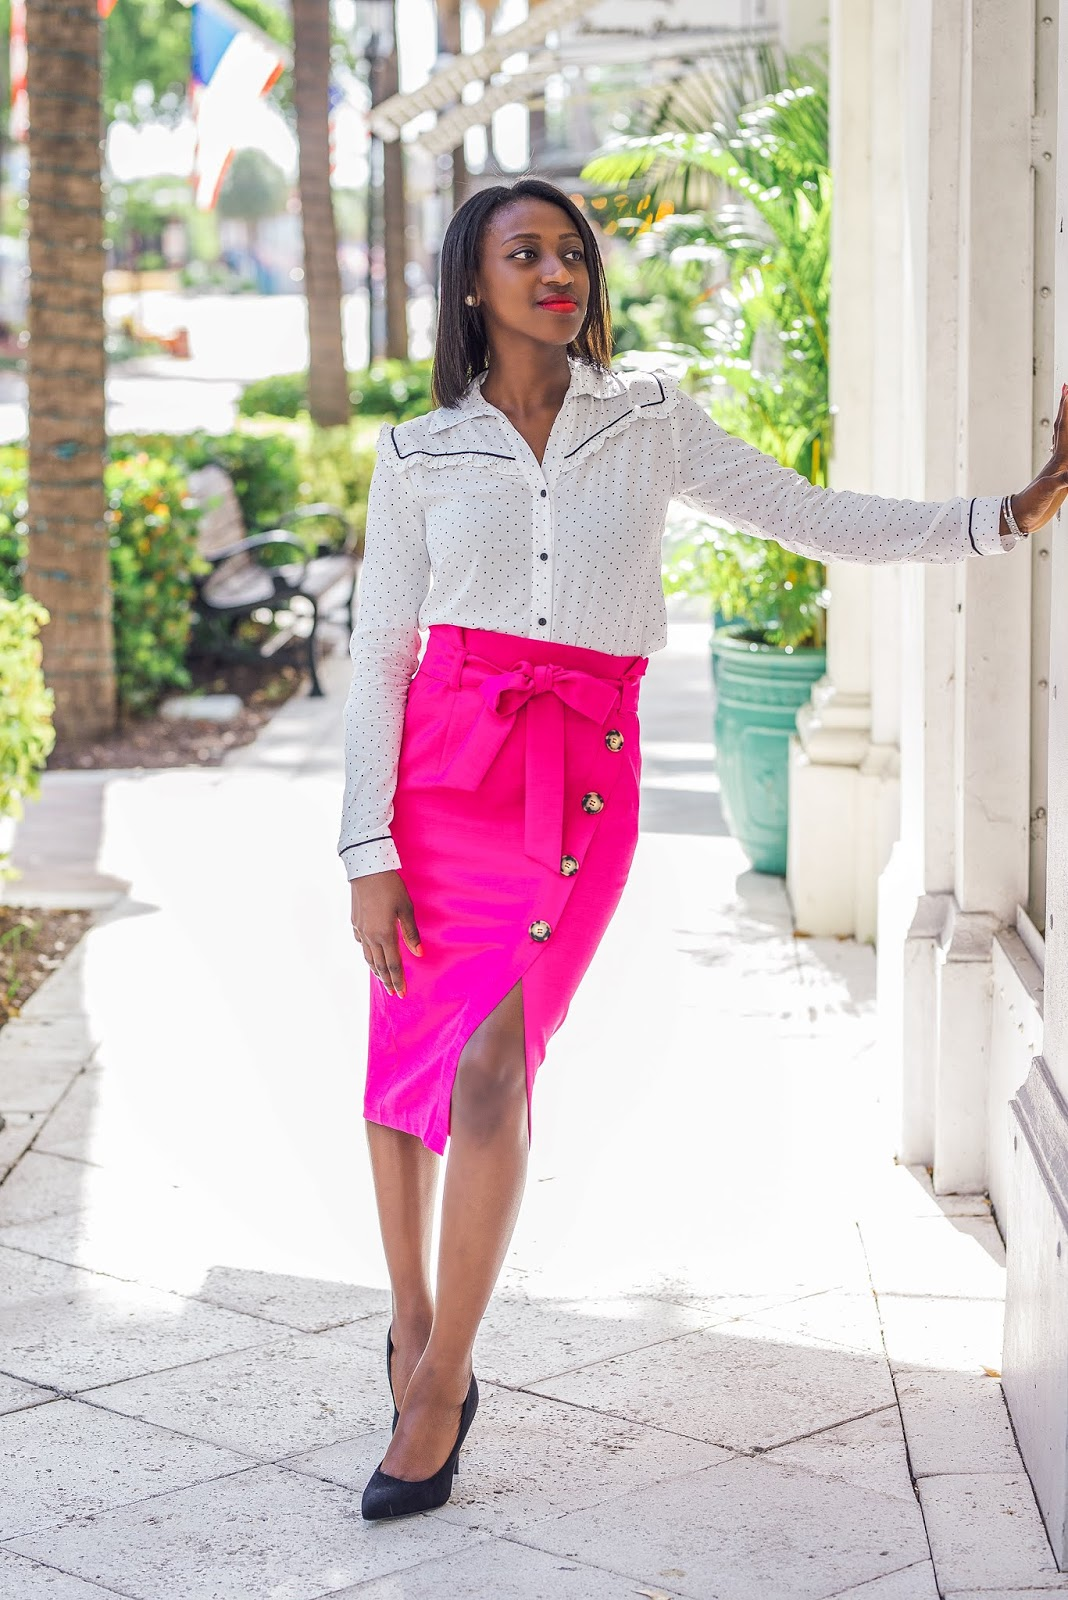 Western Polka Dot Shirt & Pink Pencil Skirt